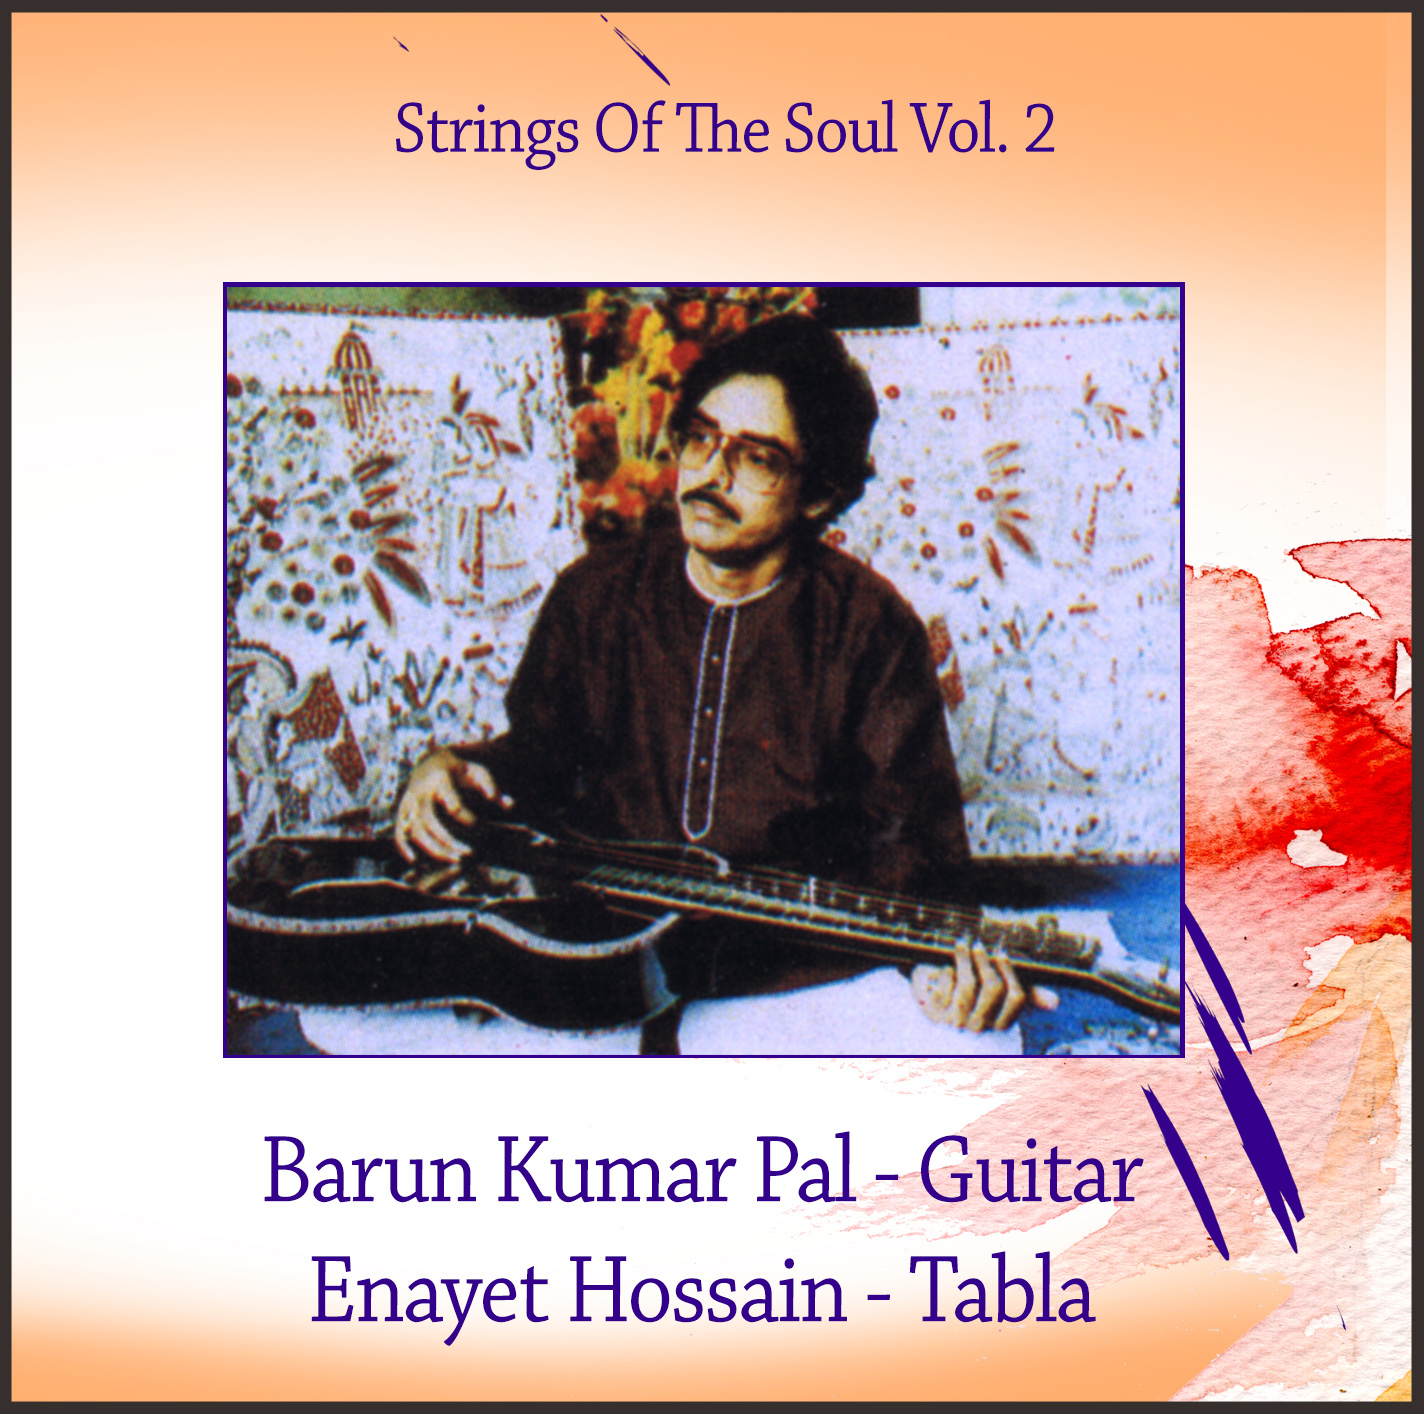 strings-of-the-soul-vol-2.jpg